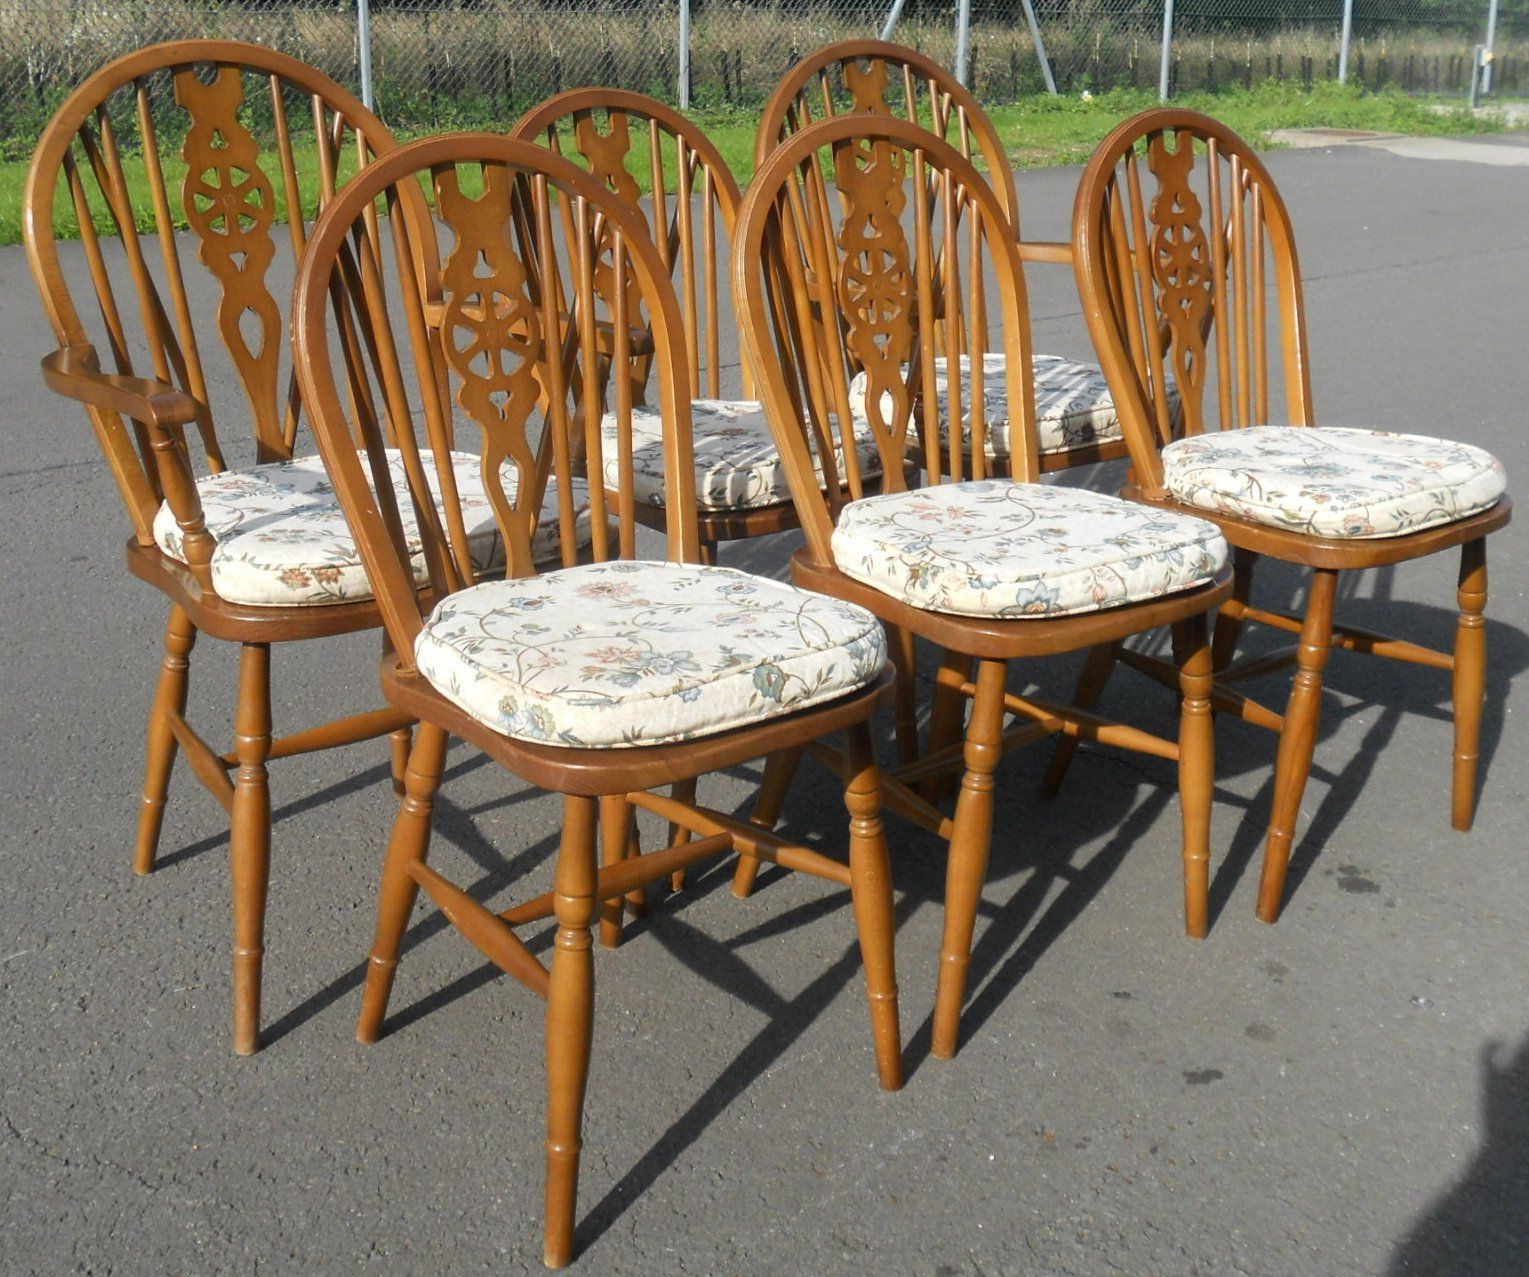 & Set Six Wheelback Chairs u0026 Refectory Dining Table